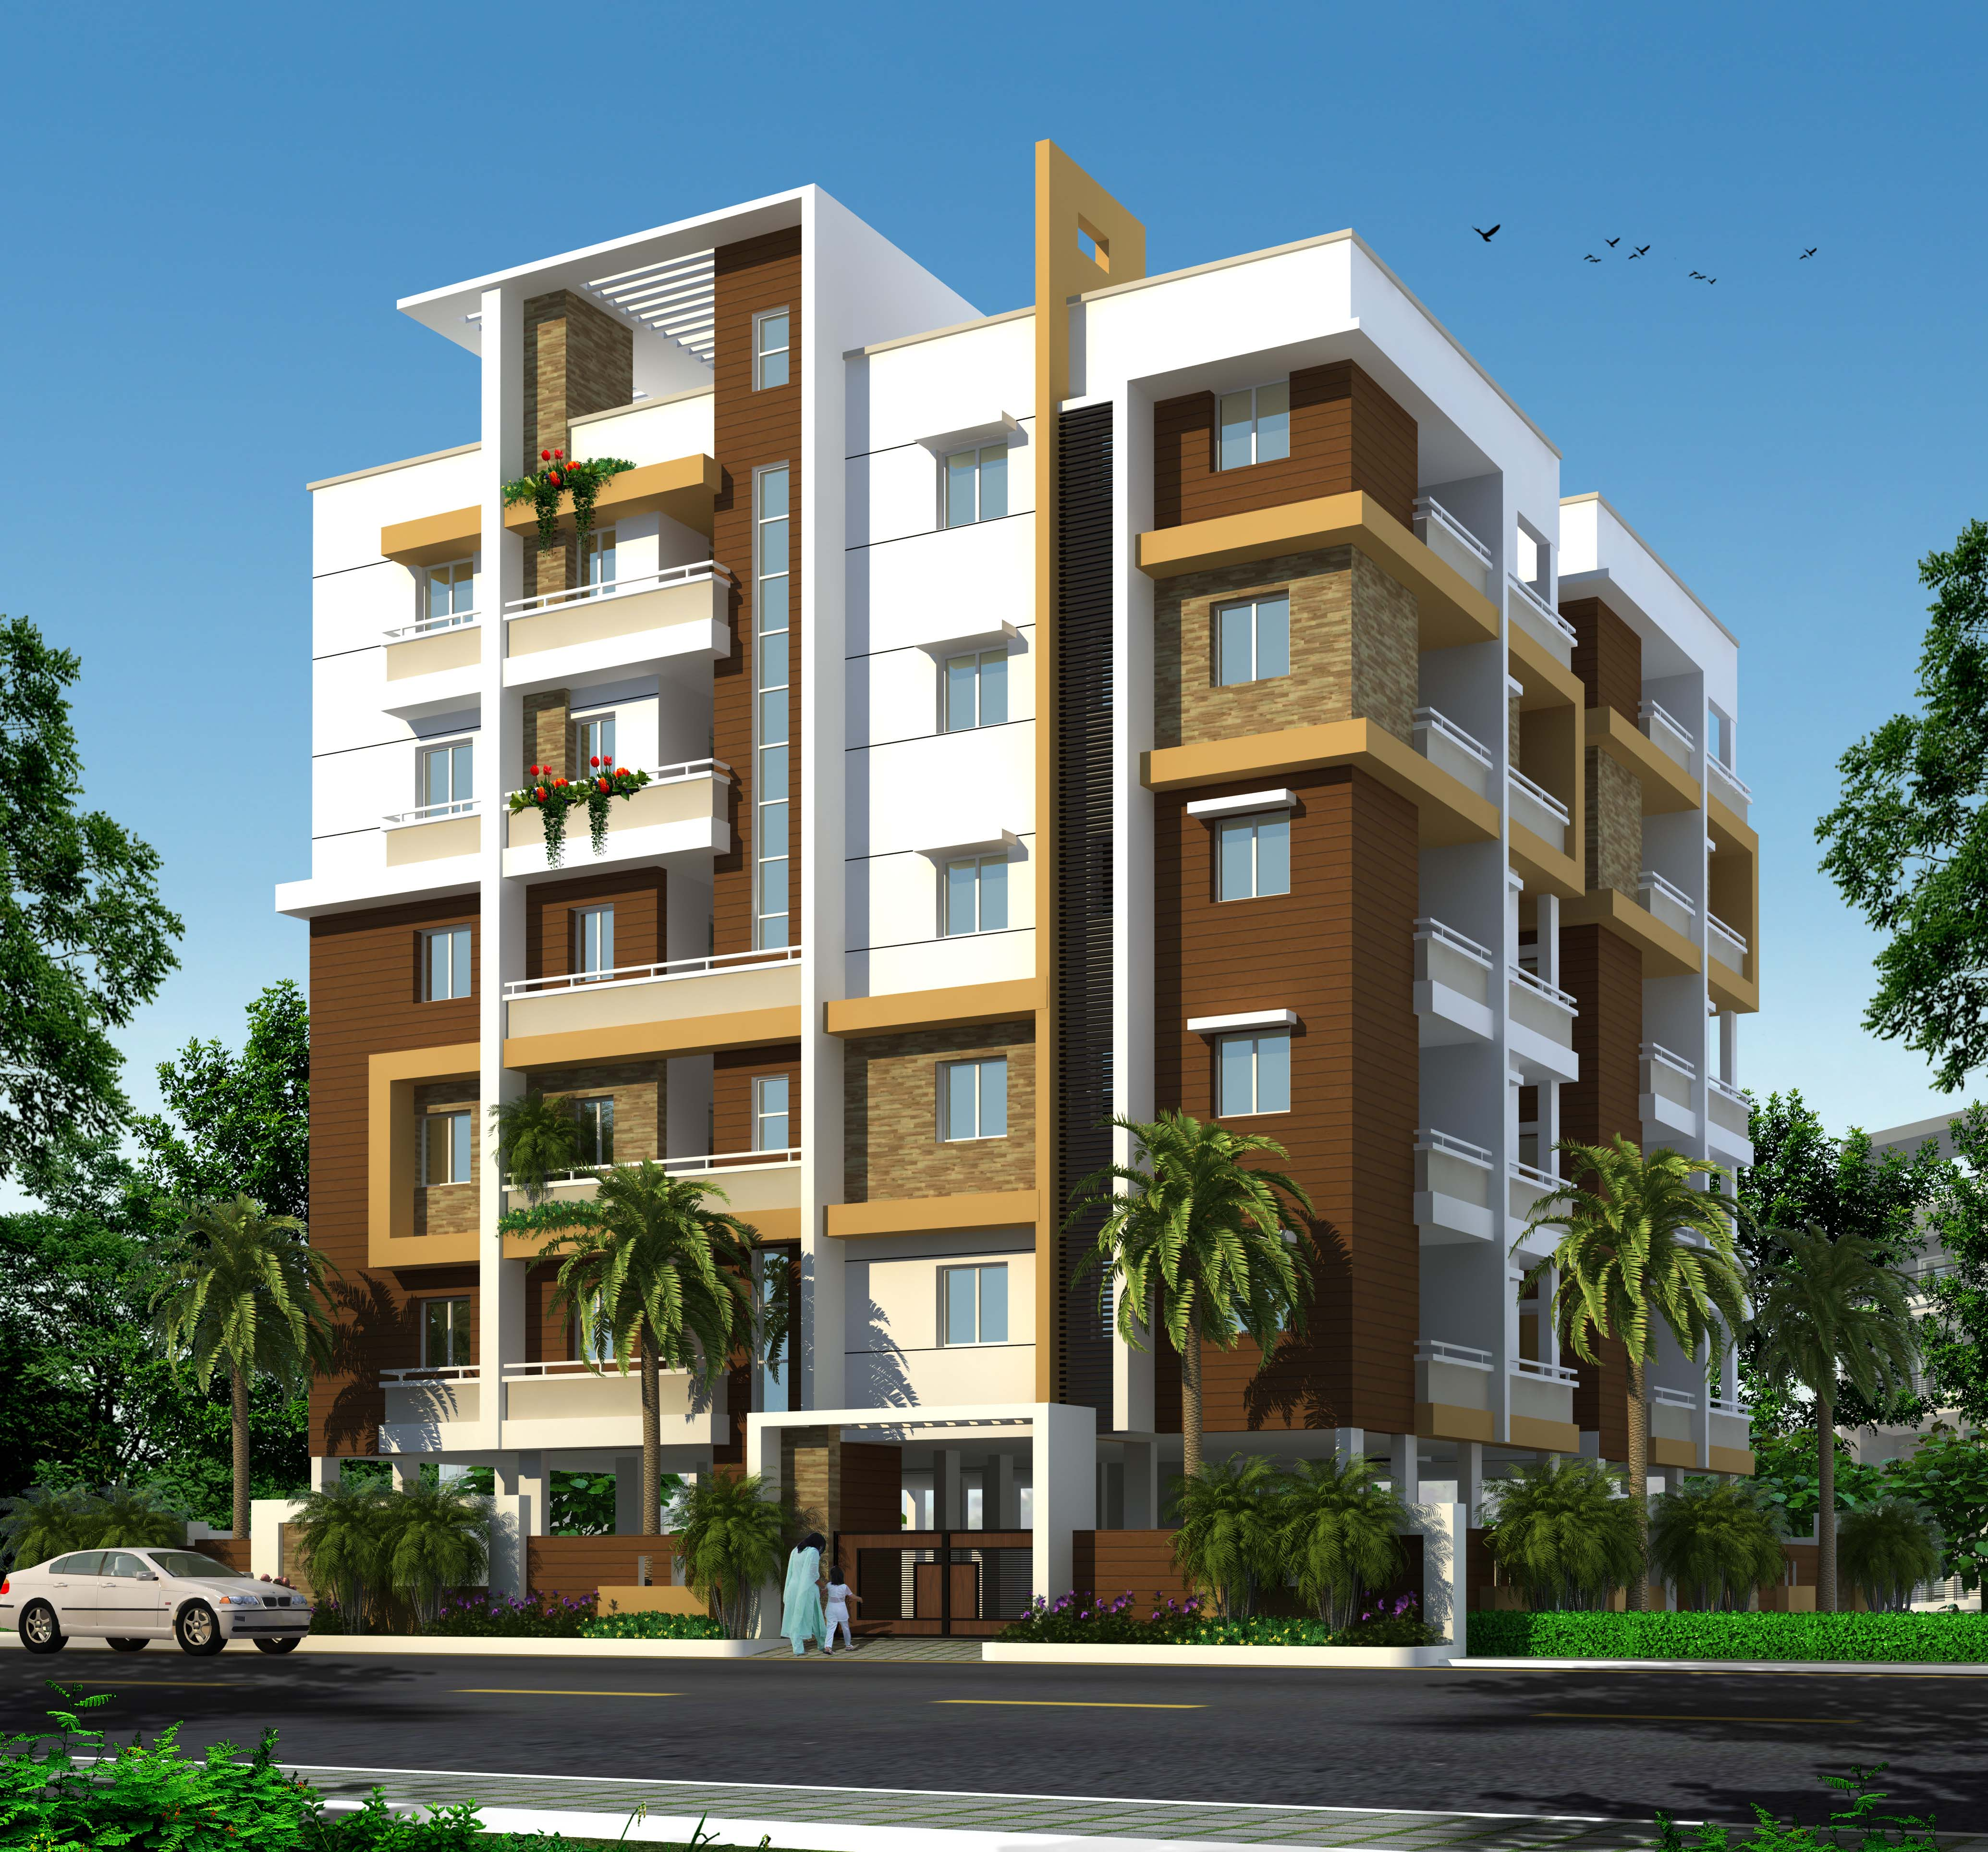 Mourya constructions for Apartment design development pvt ltd